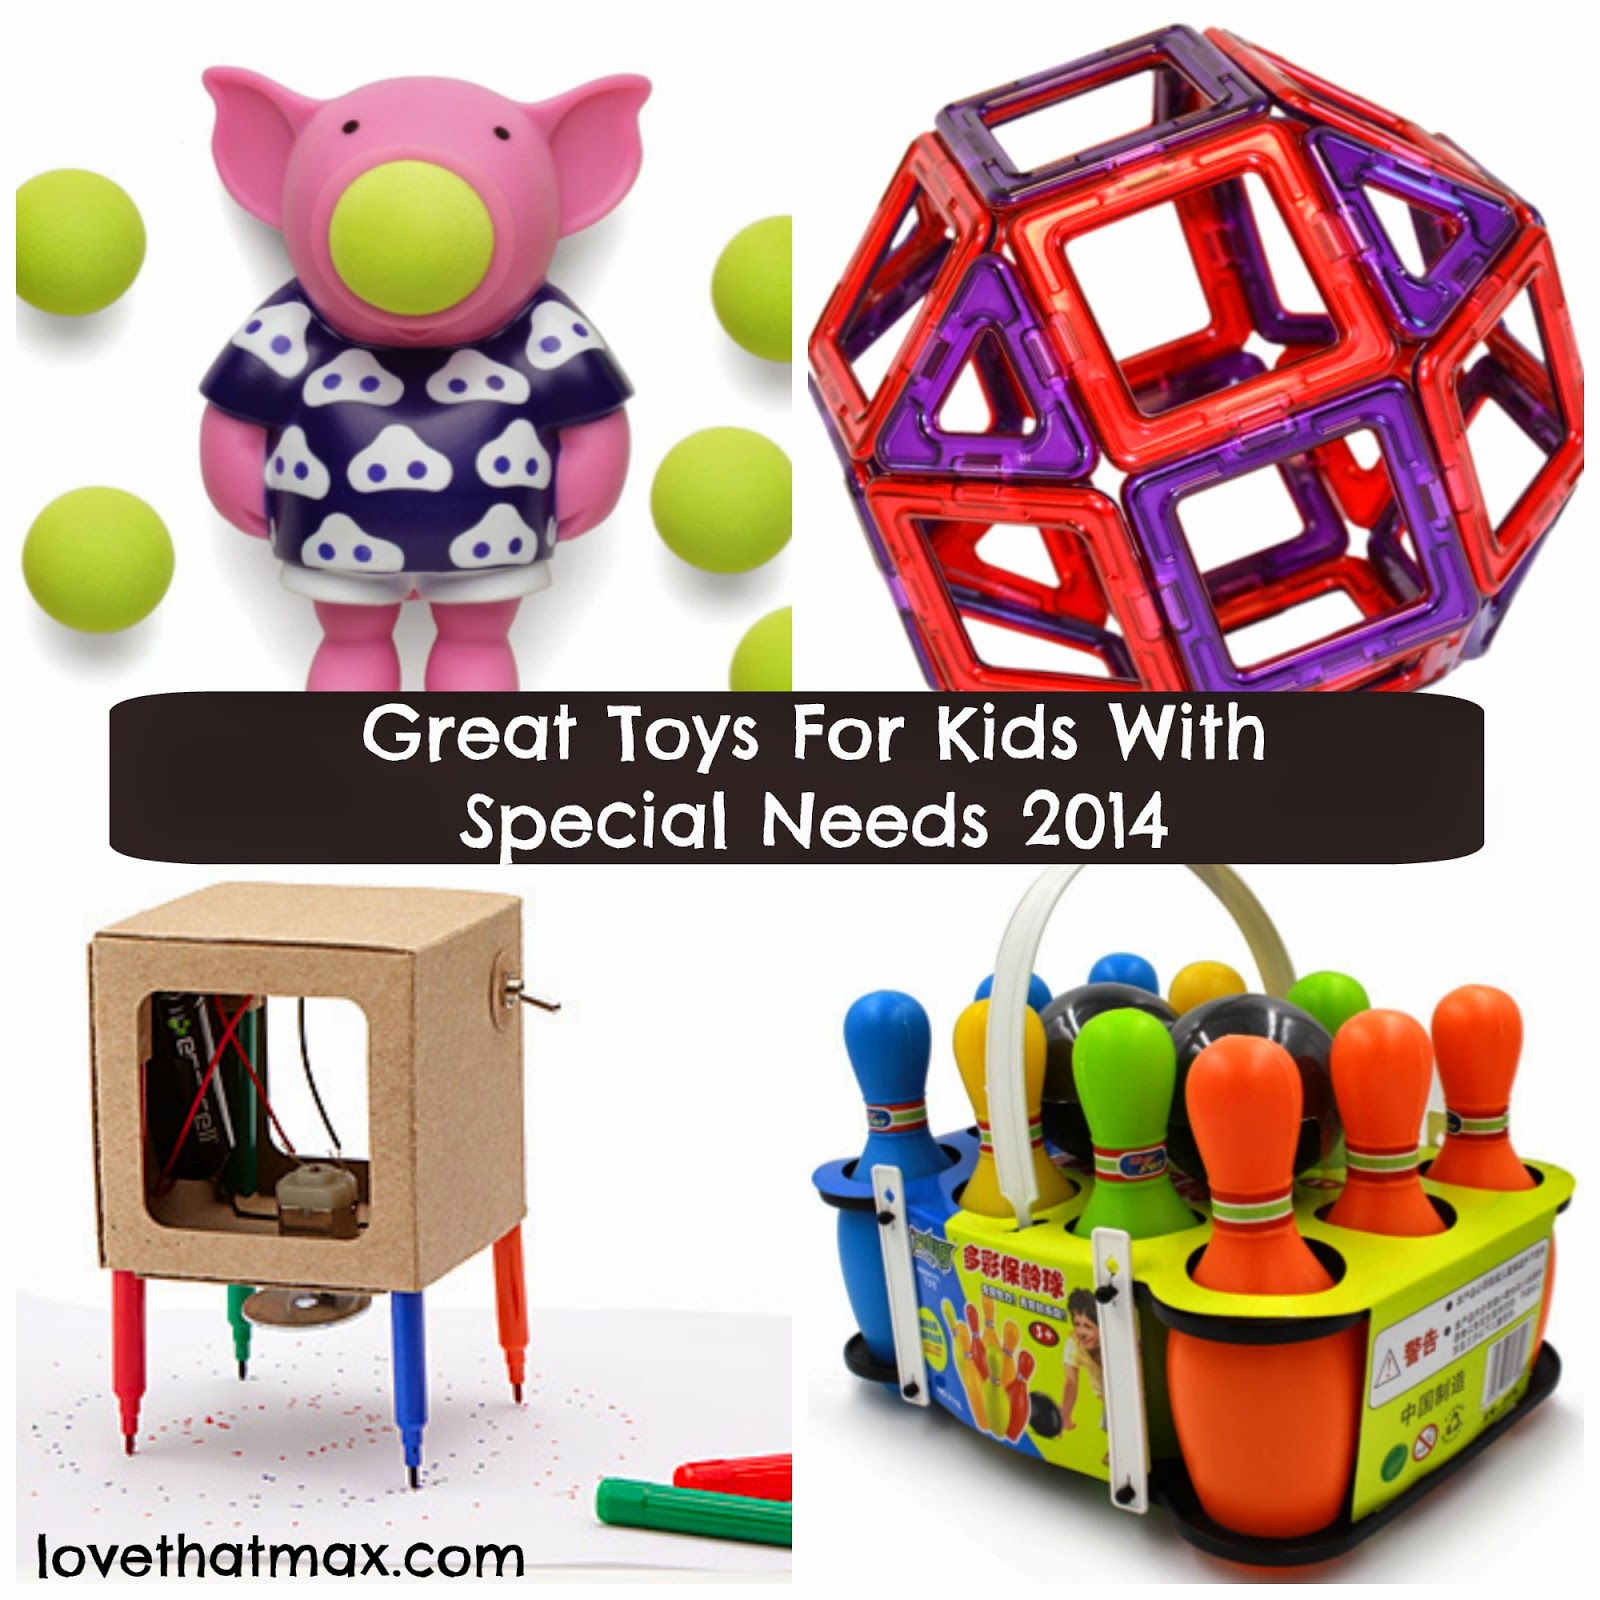 Love That Max Holiday Gifts And Toys For Kids With Special Needs